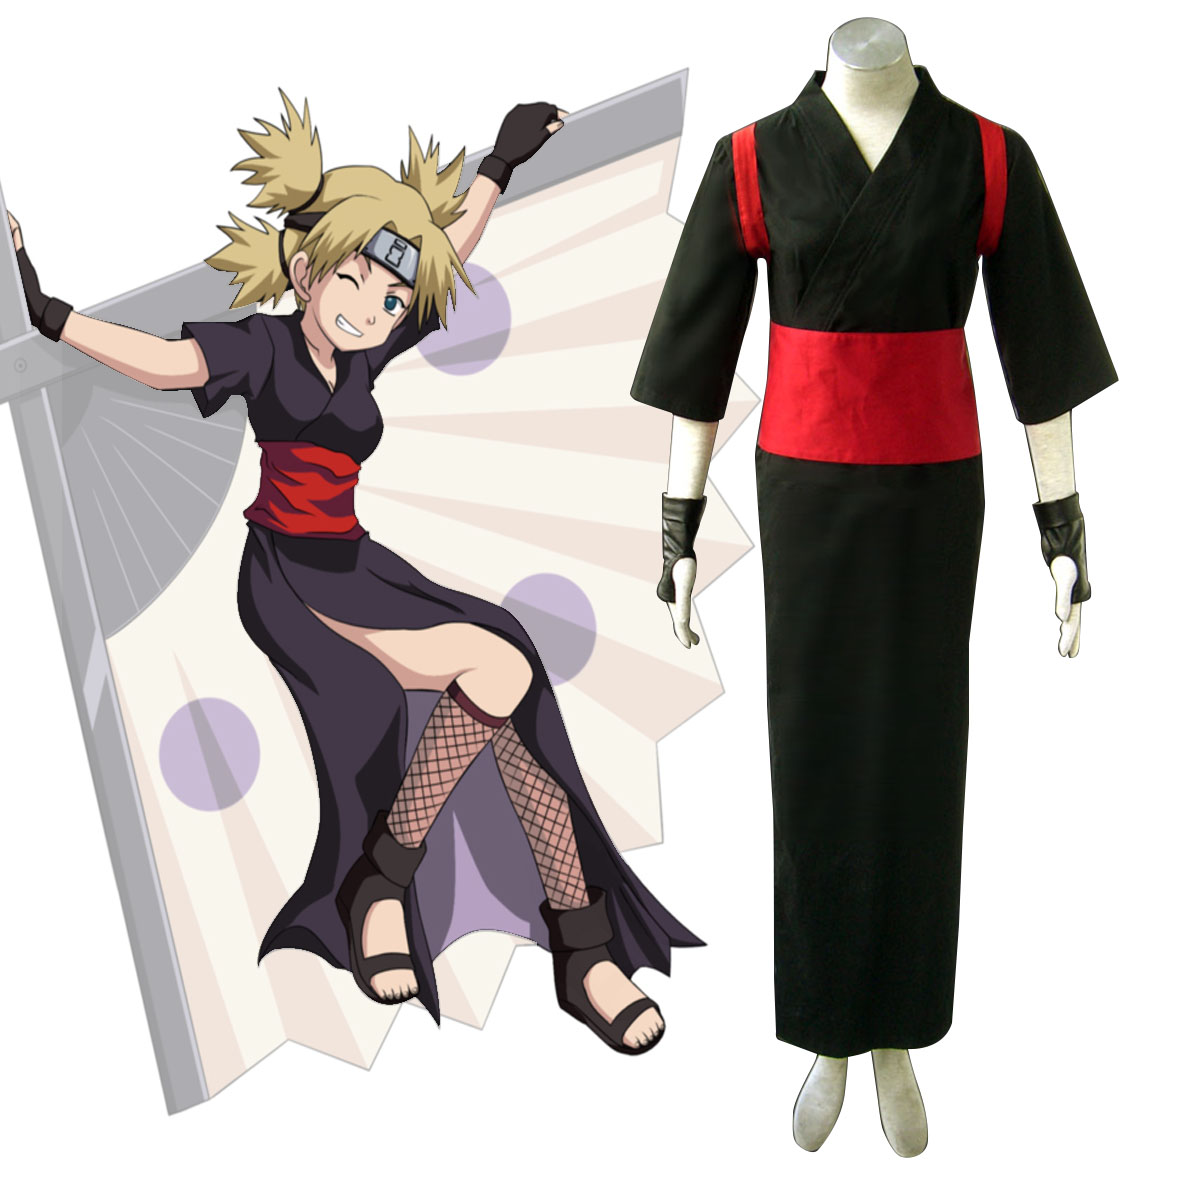 Naruto Shippuden Temari 3 Anime Cosplay Costumes Outfit